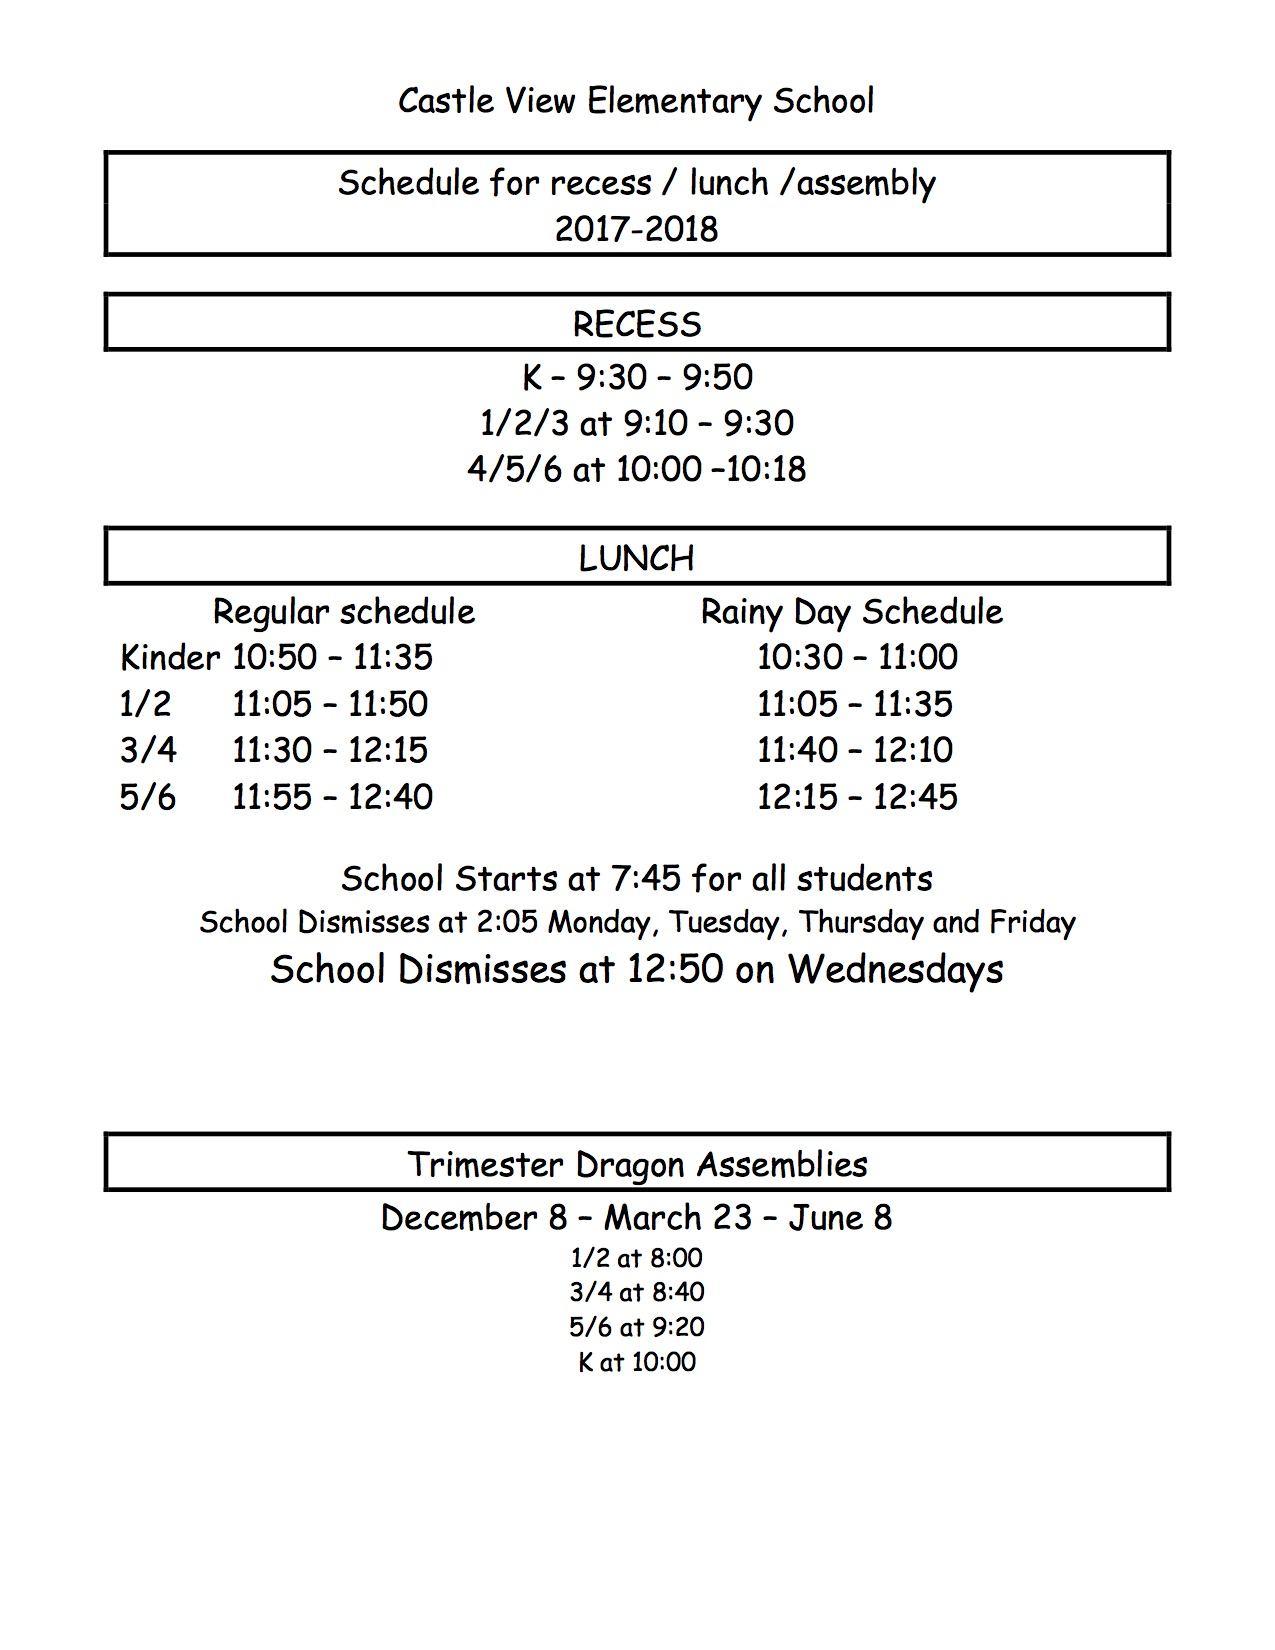 Bell Schedule – Castle View Elementary Regarding Victorville School District Class Schedule